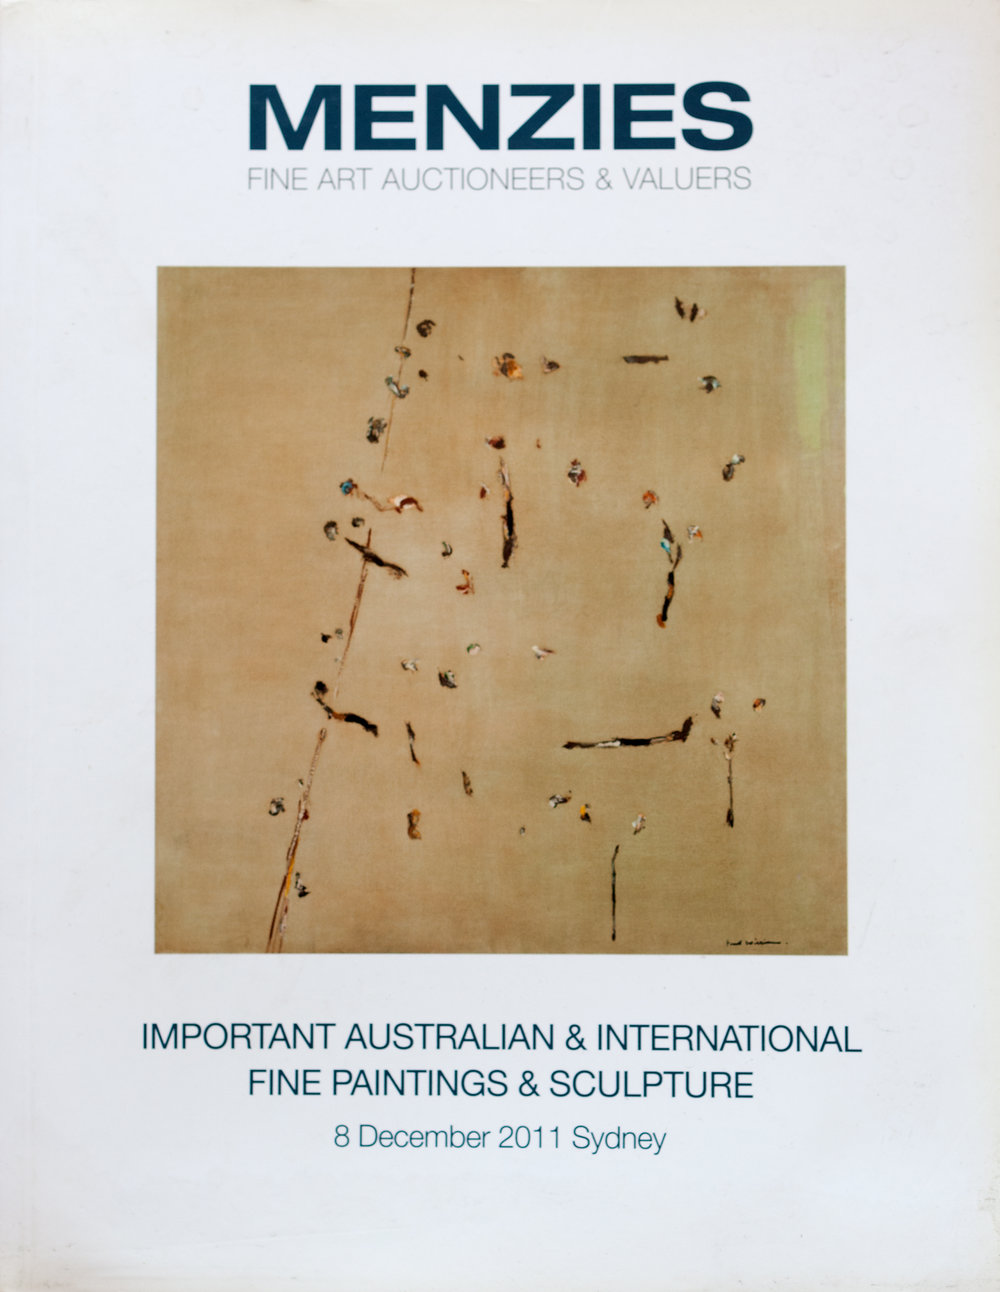 171023 Menzies Catalogues_022.jpg